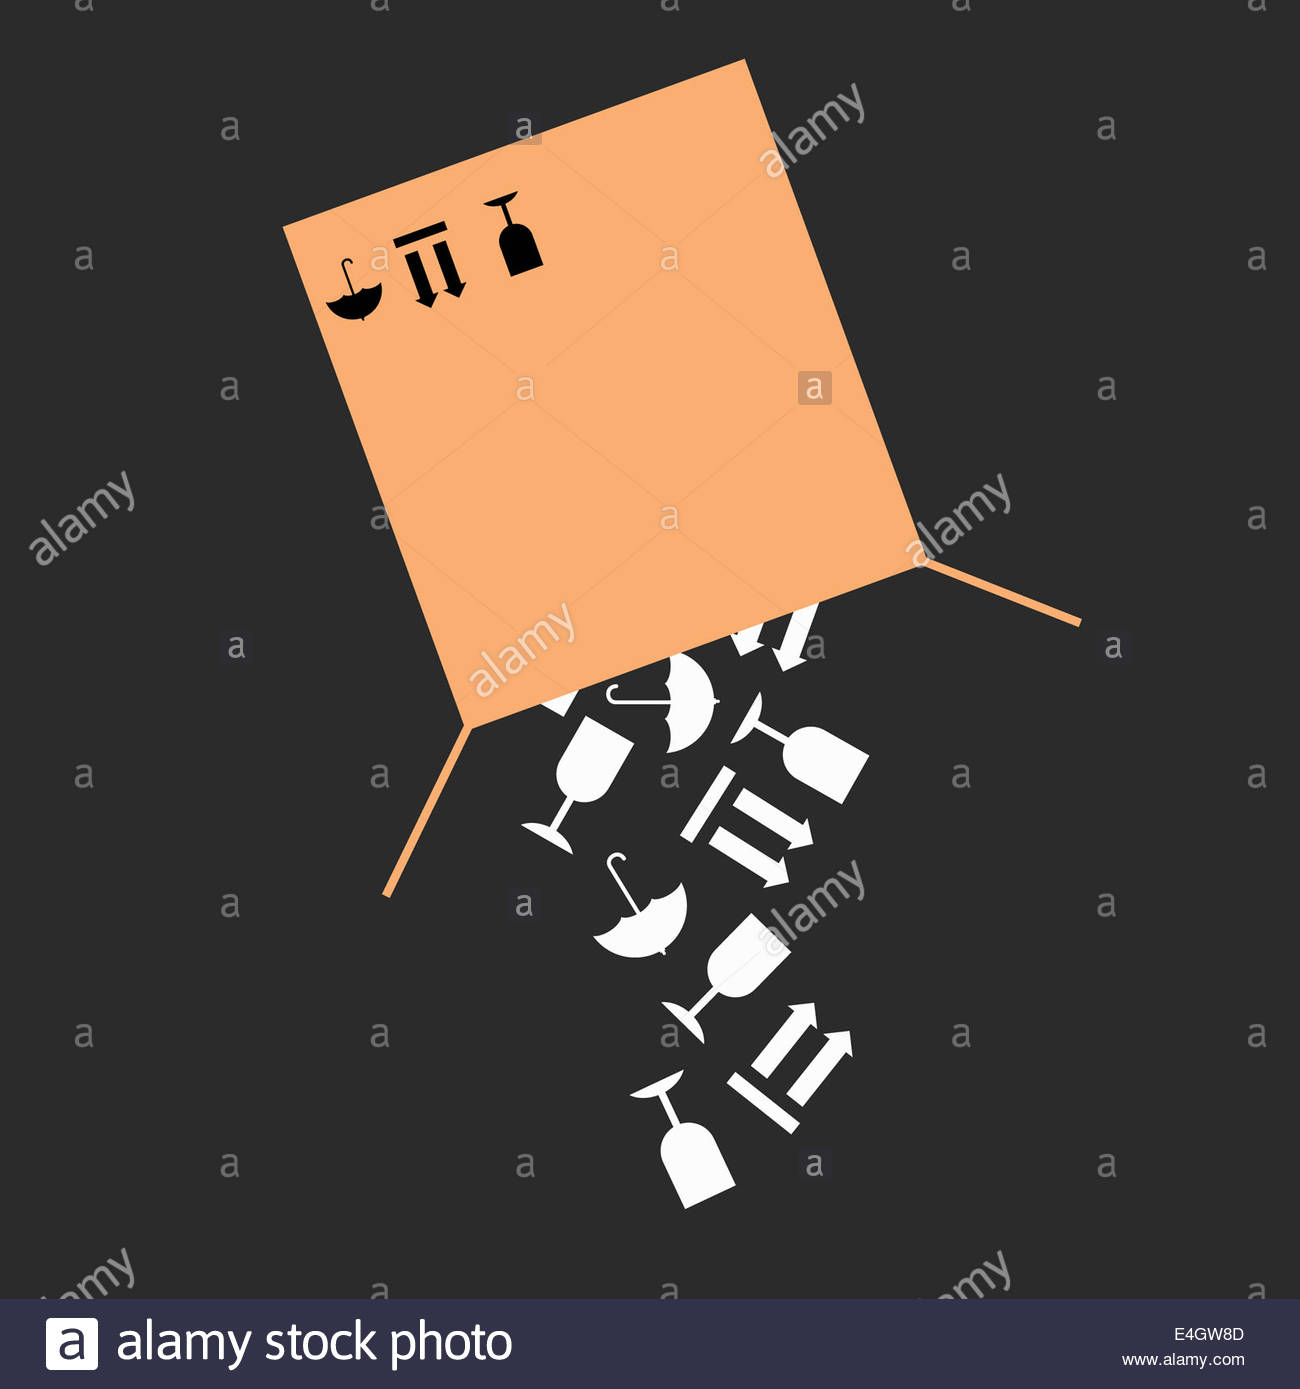 Fragile warning packaging symbols falling from cardboard box - Stock Image